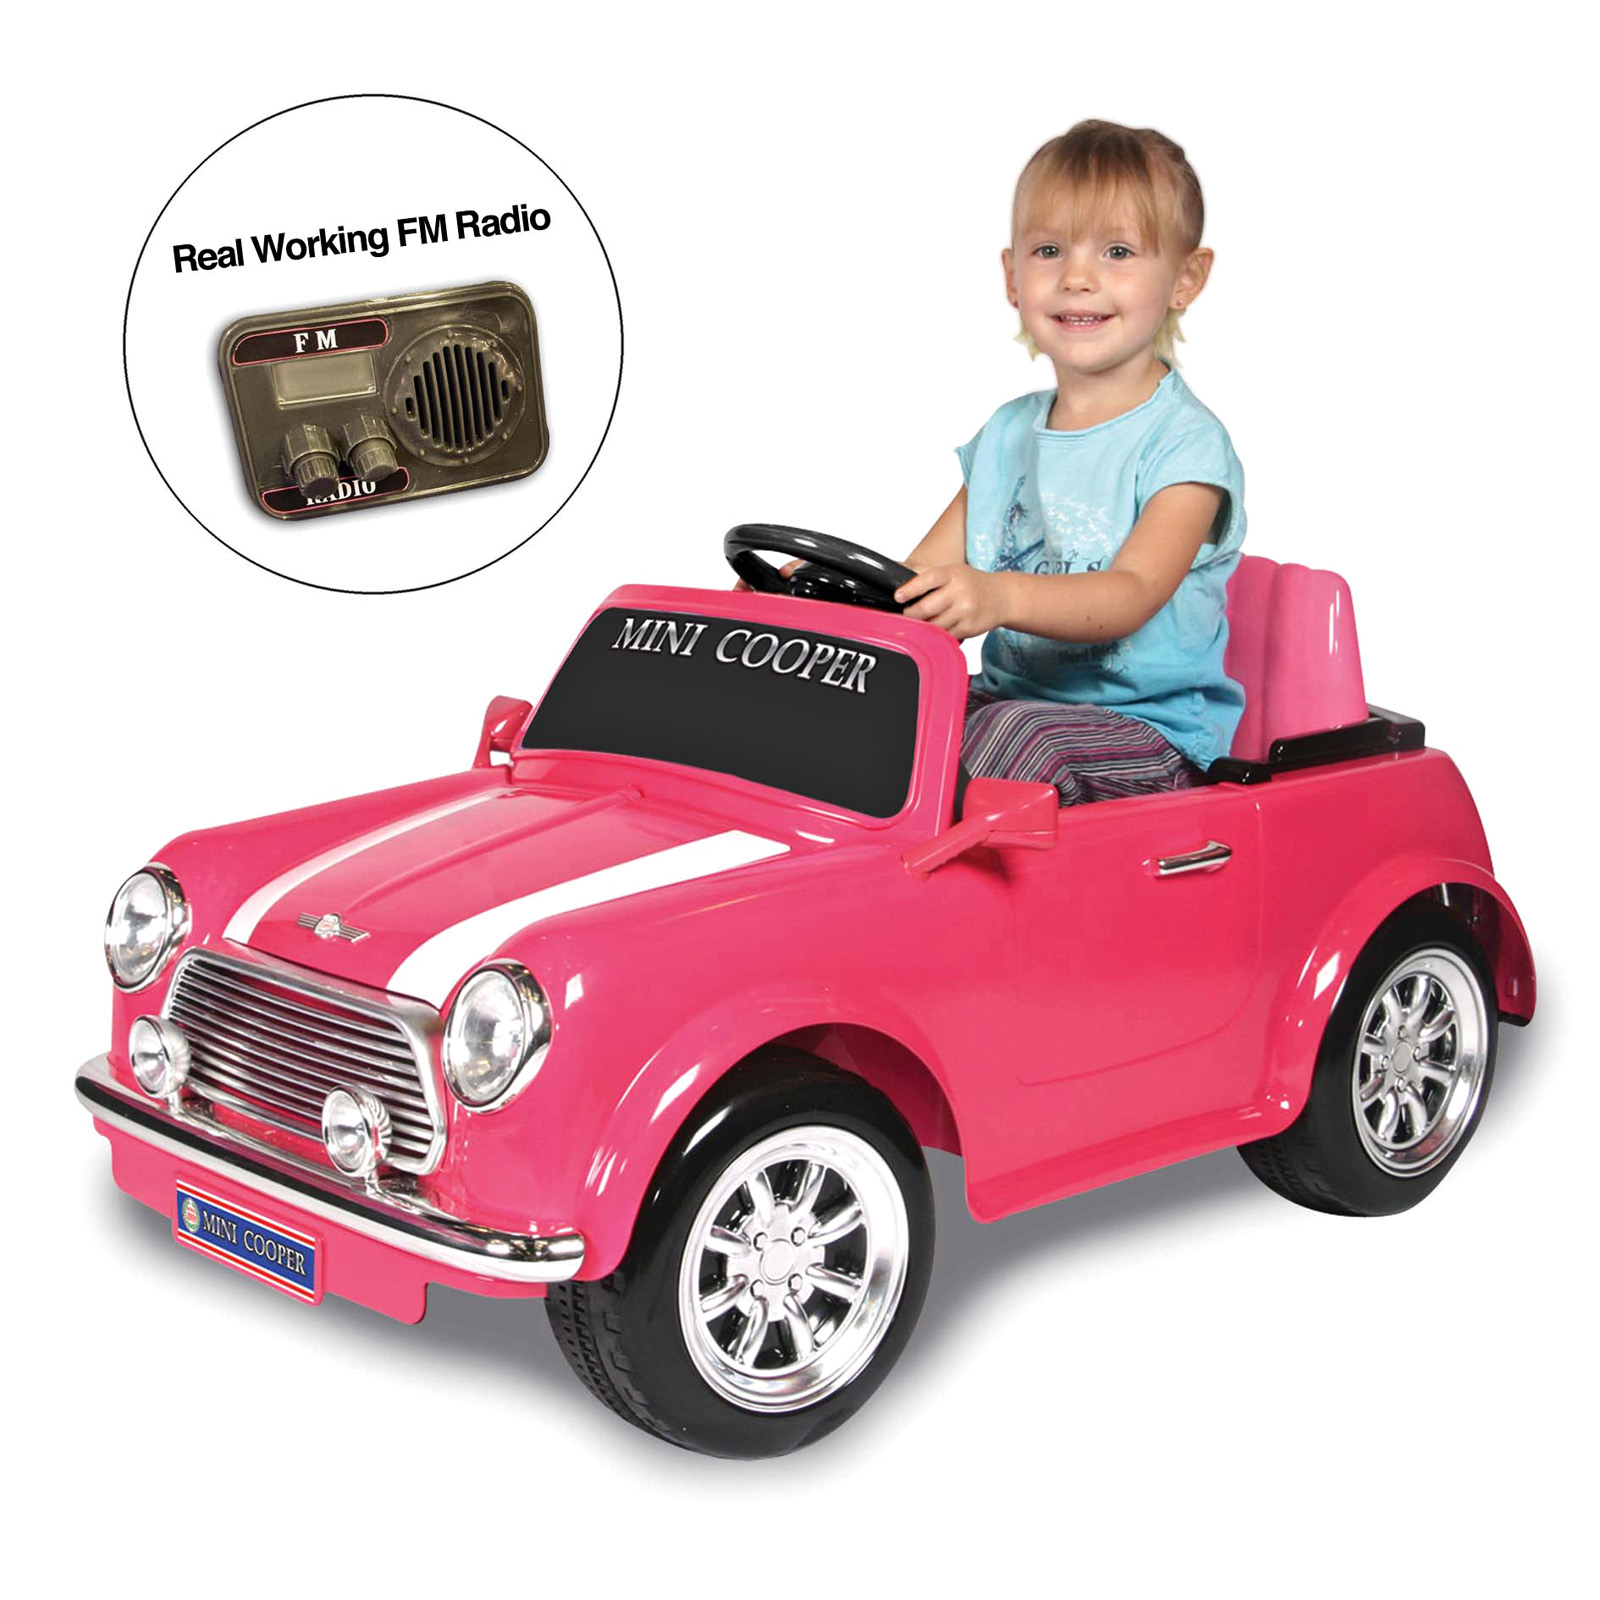 kid motorz mini cooper with radio battery powered riding toy pink at hayneedle. Black Bedroom Furniture Sets. Home Design Ideas